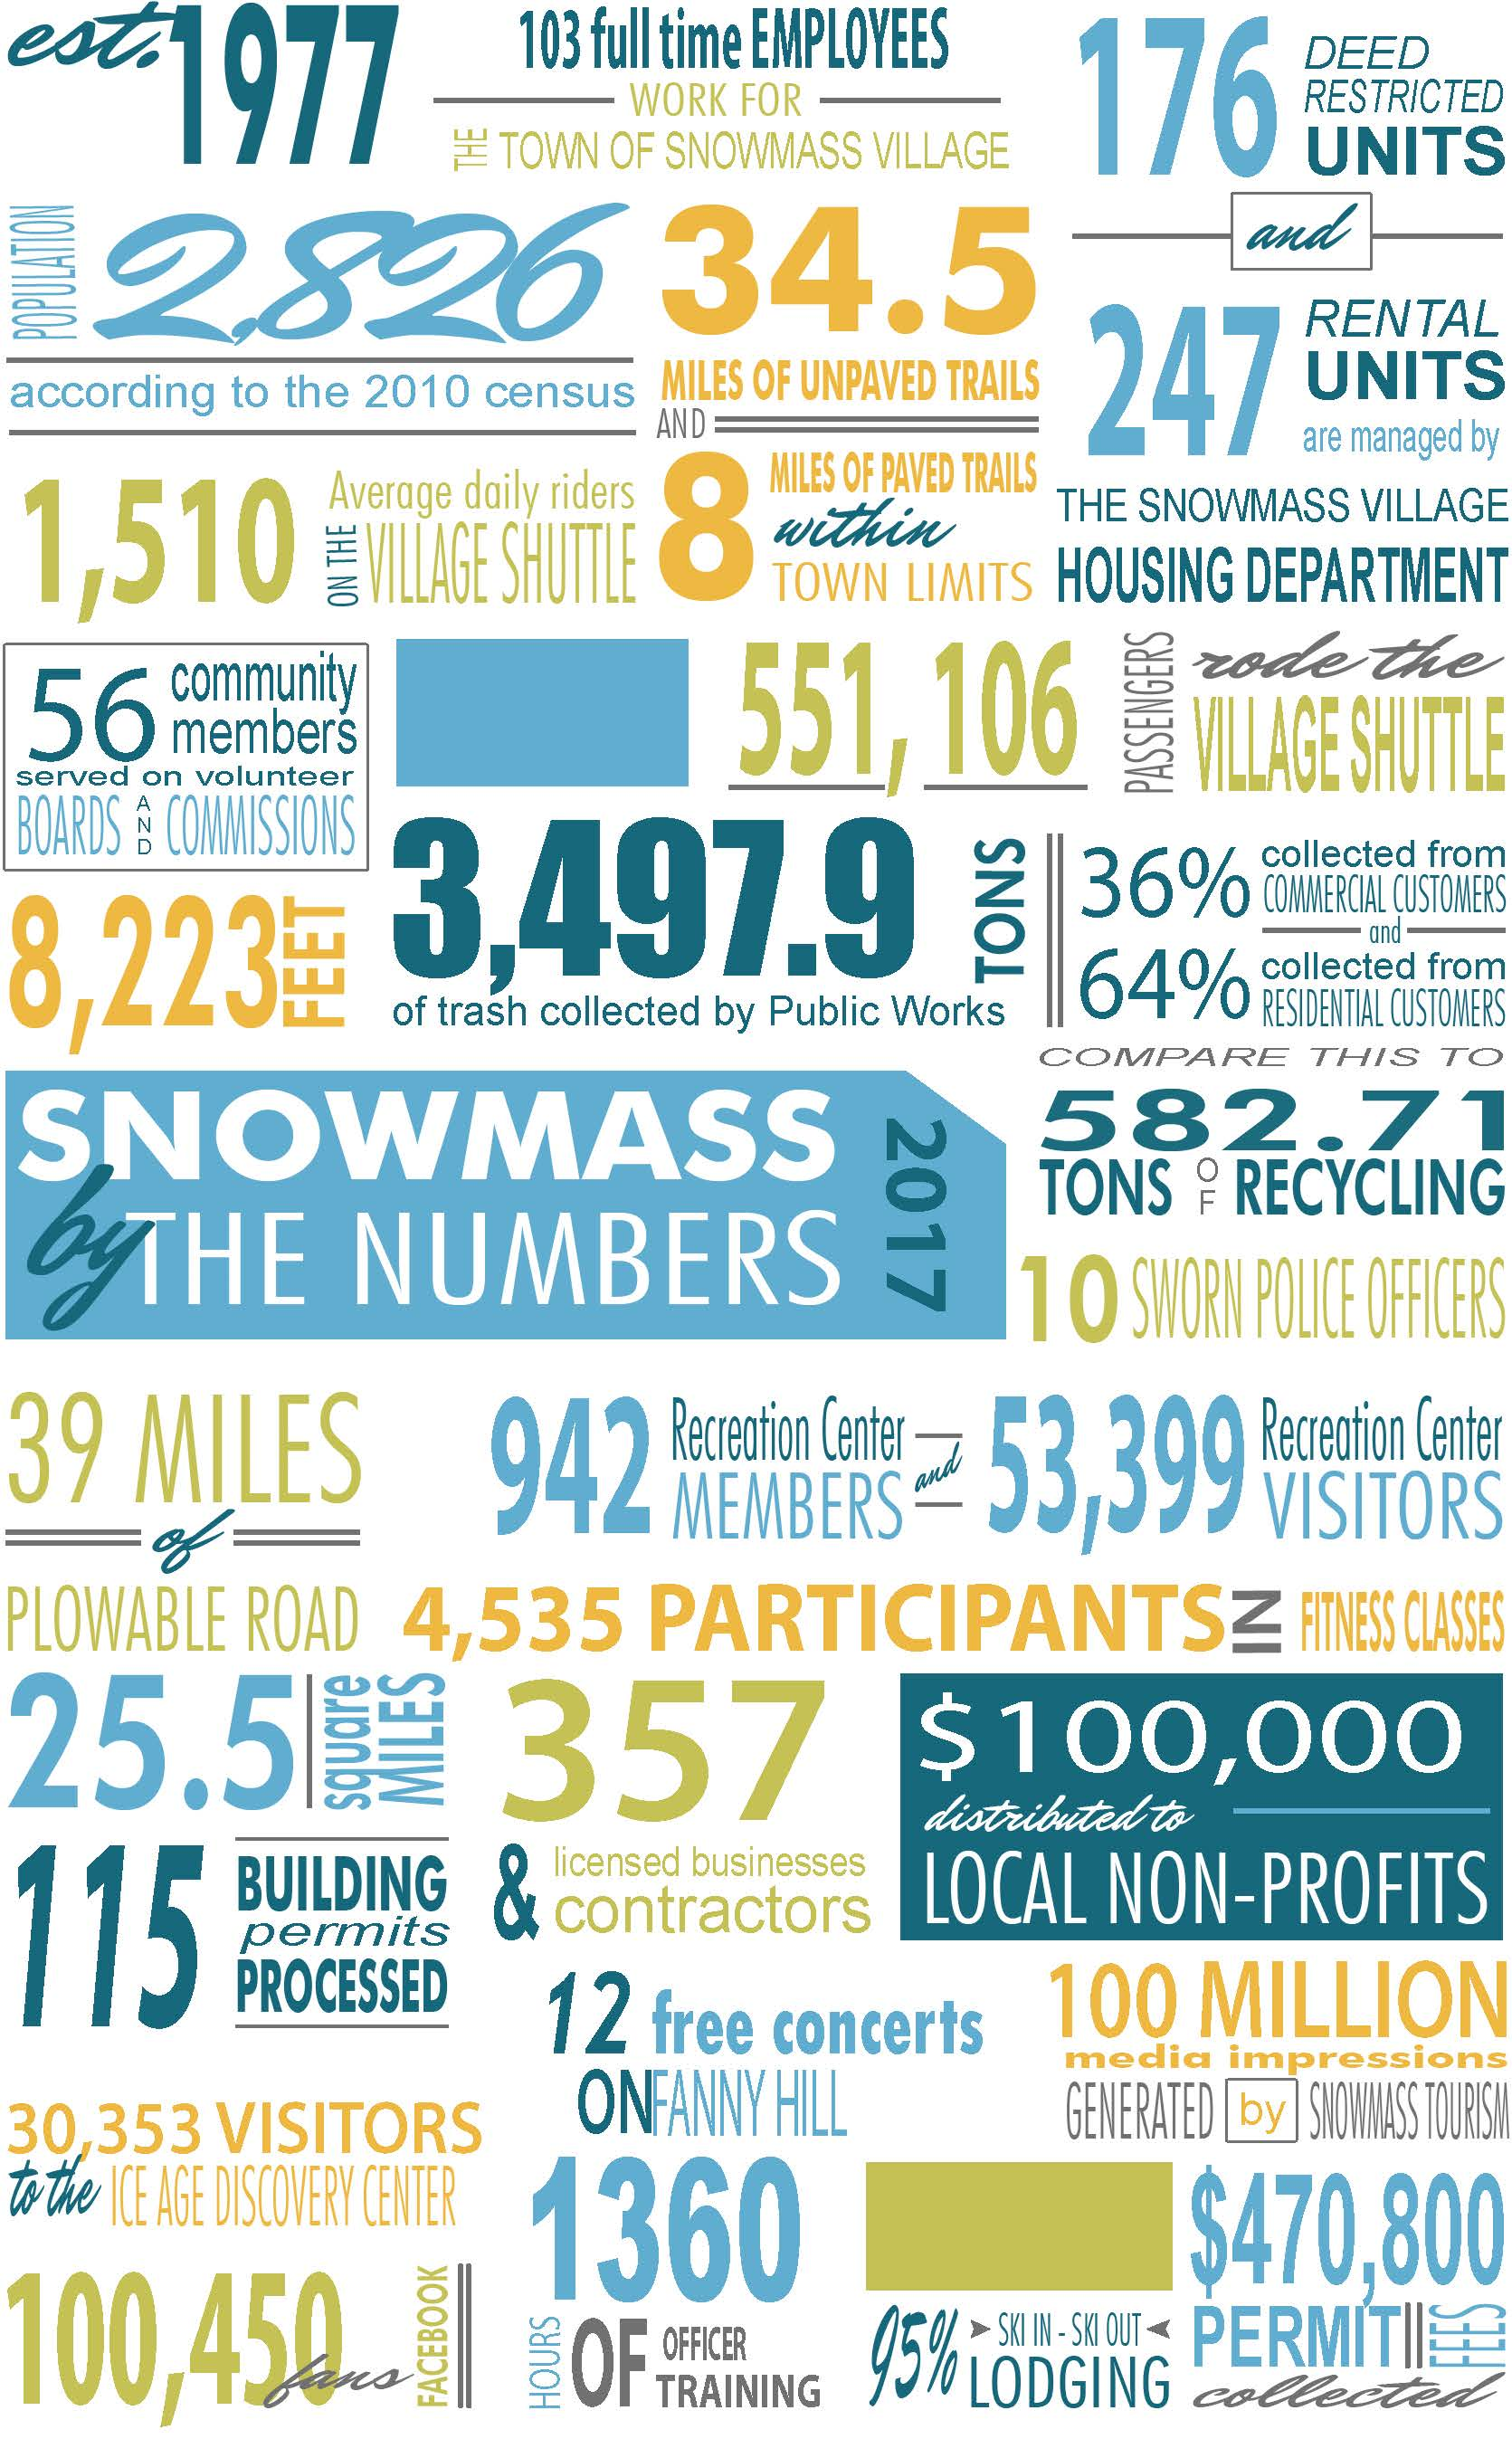 Snowmass by the numbers 2017.jpg